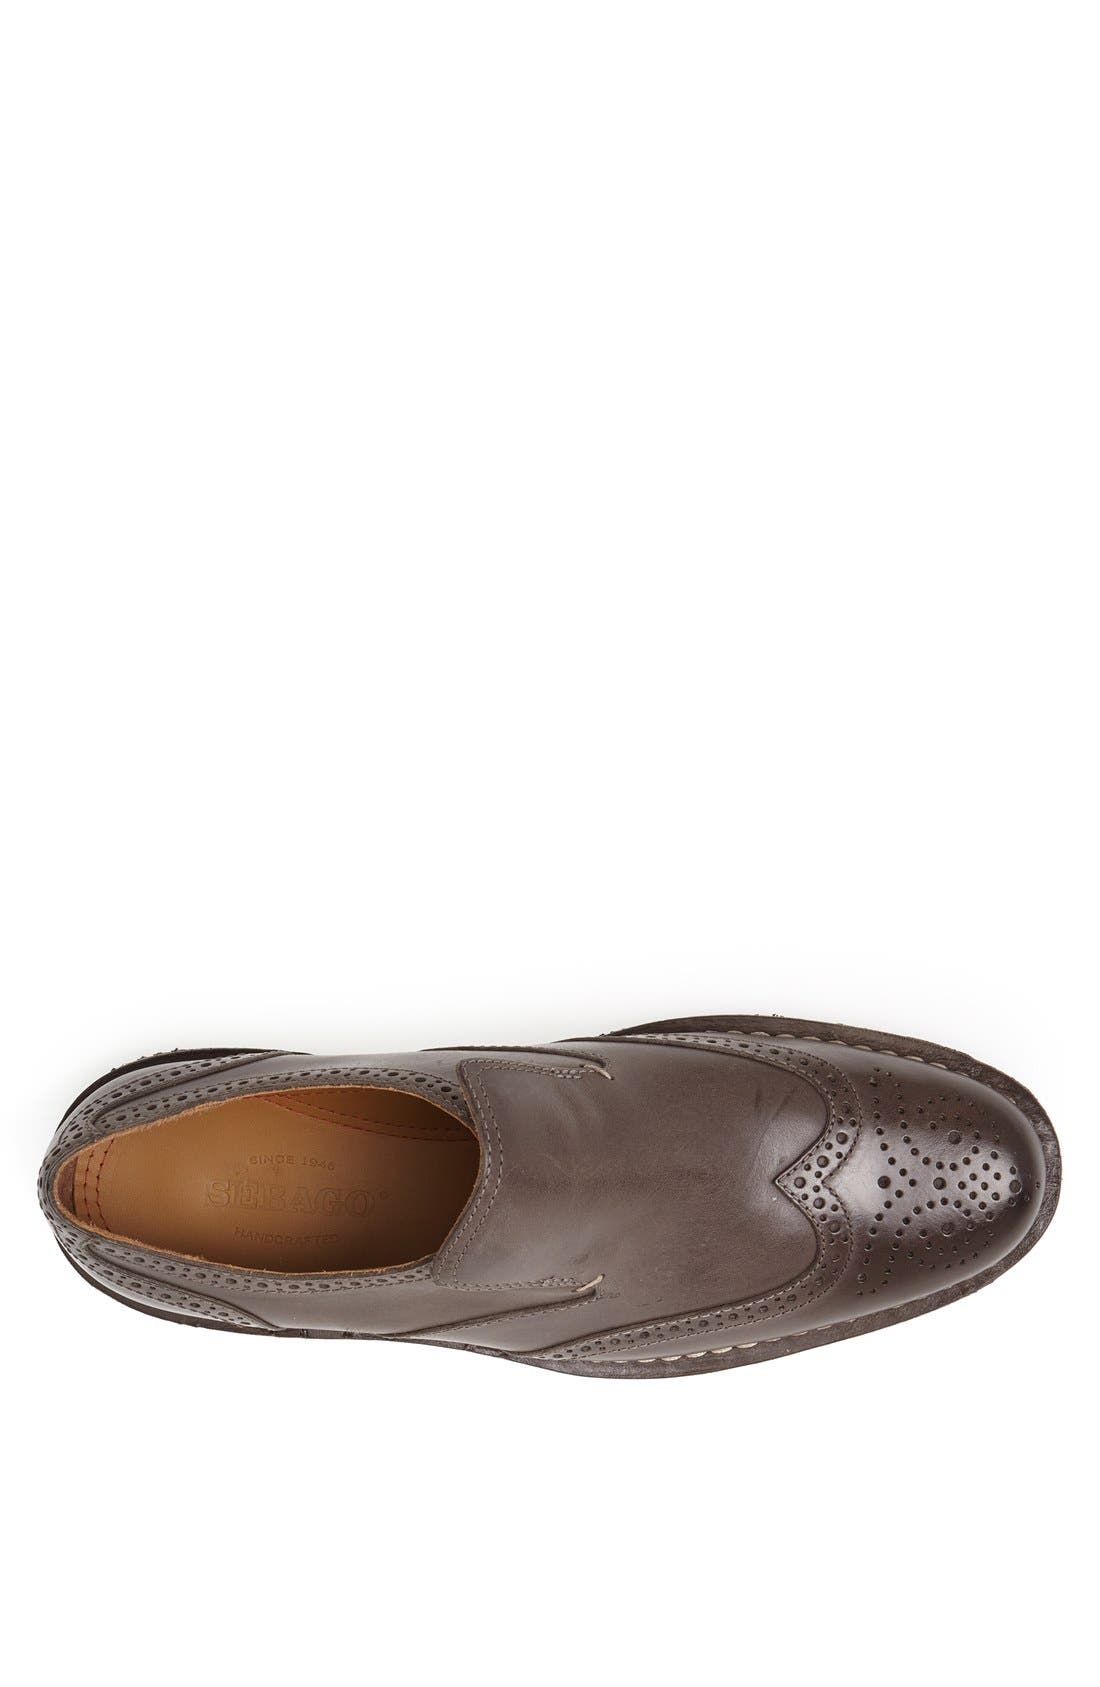 Alternate Image 3  - Sebago 'Brattle' Venetian Loafer